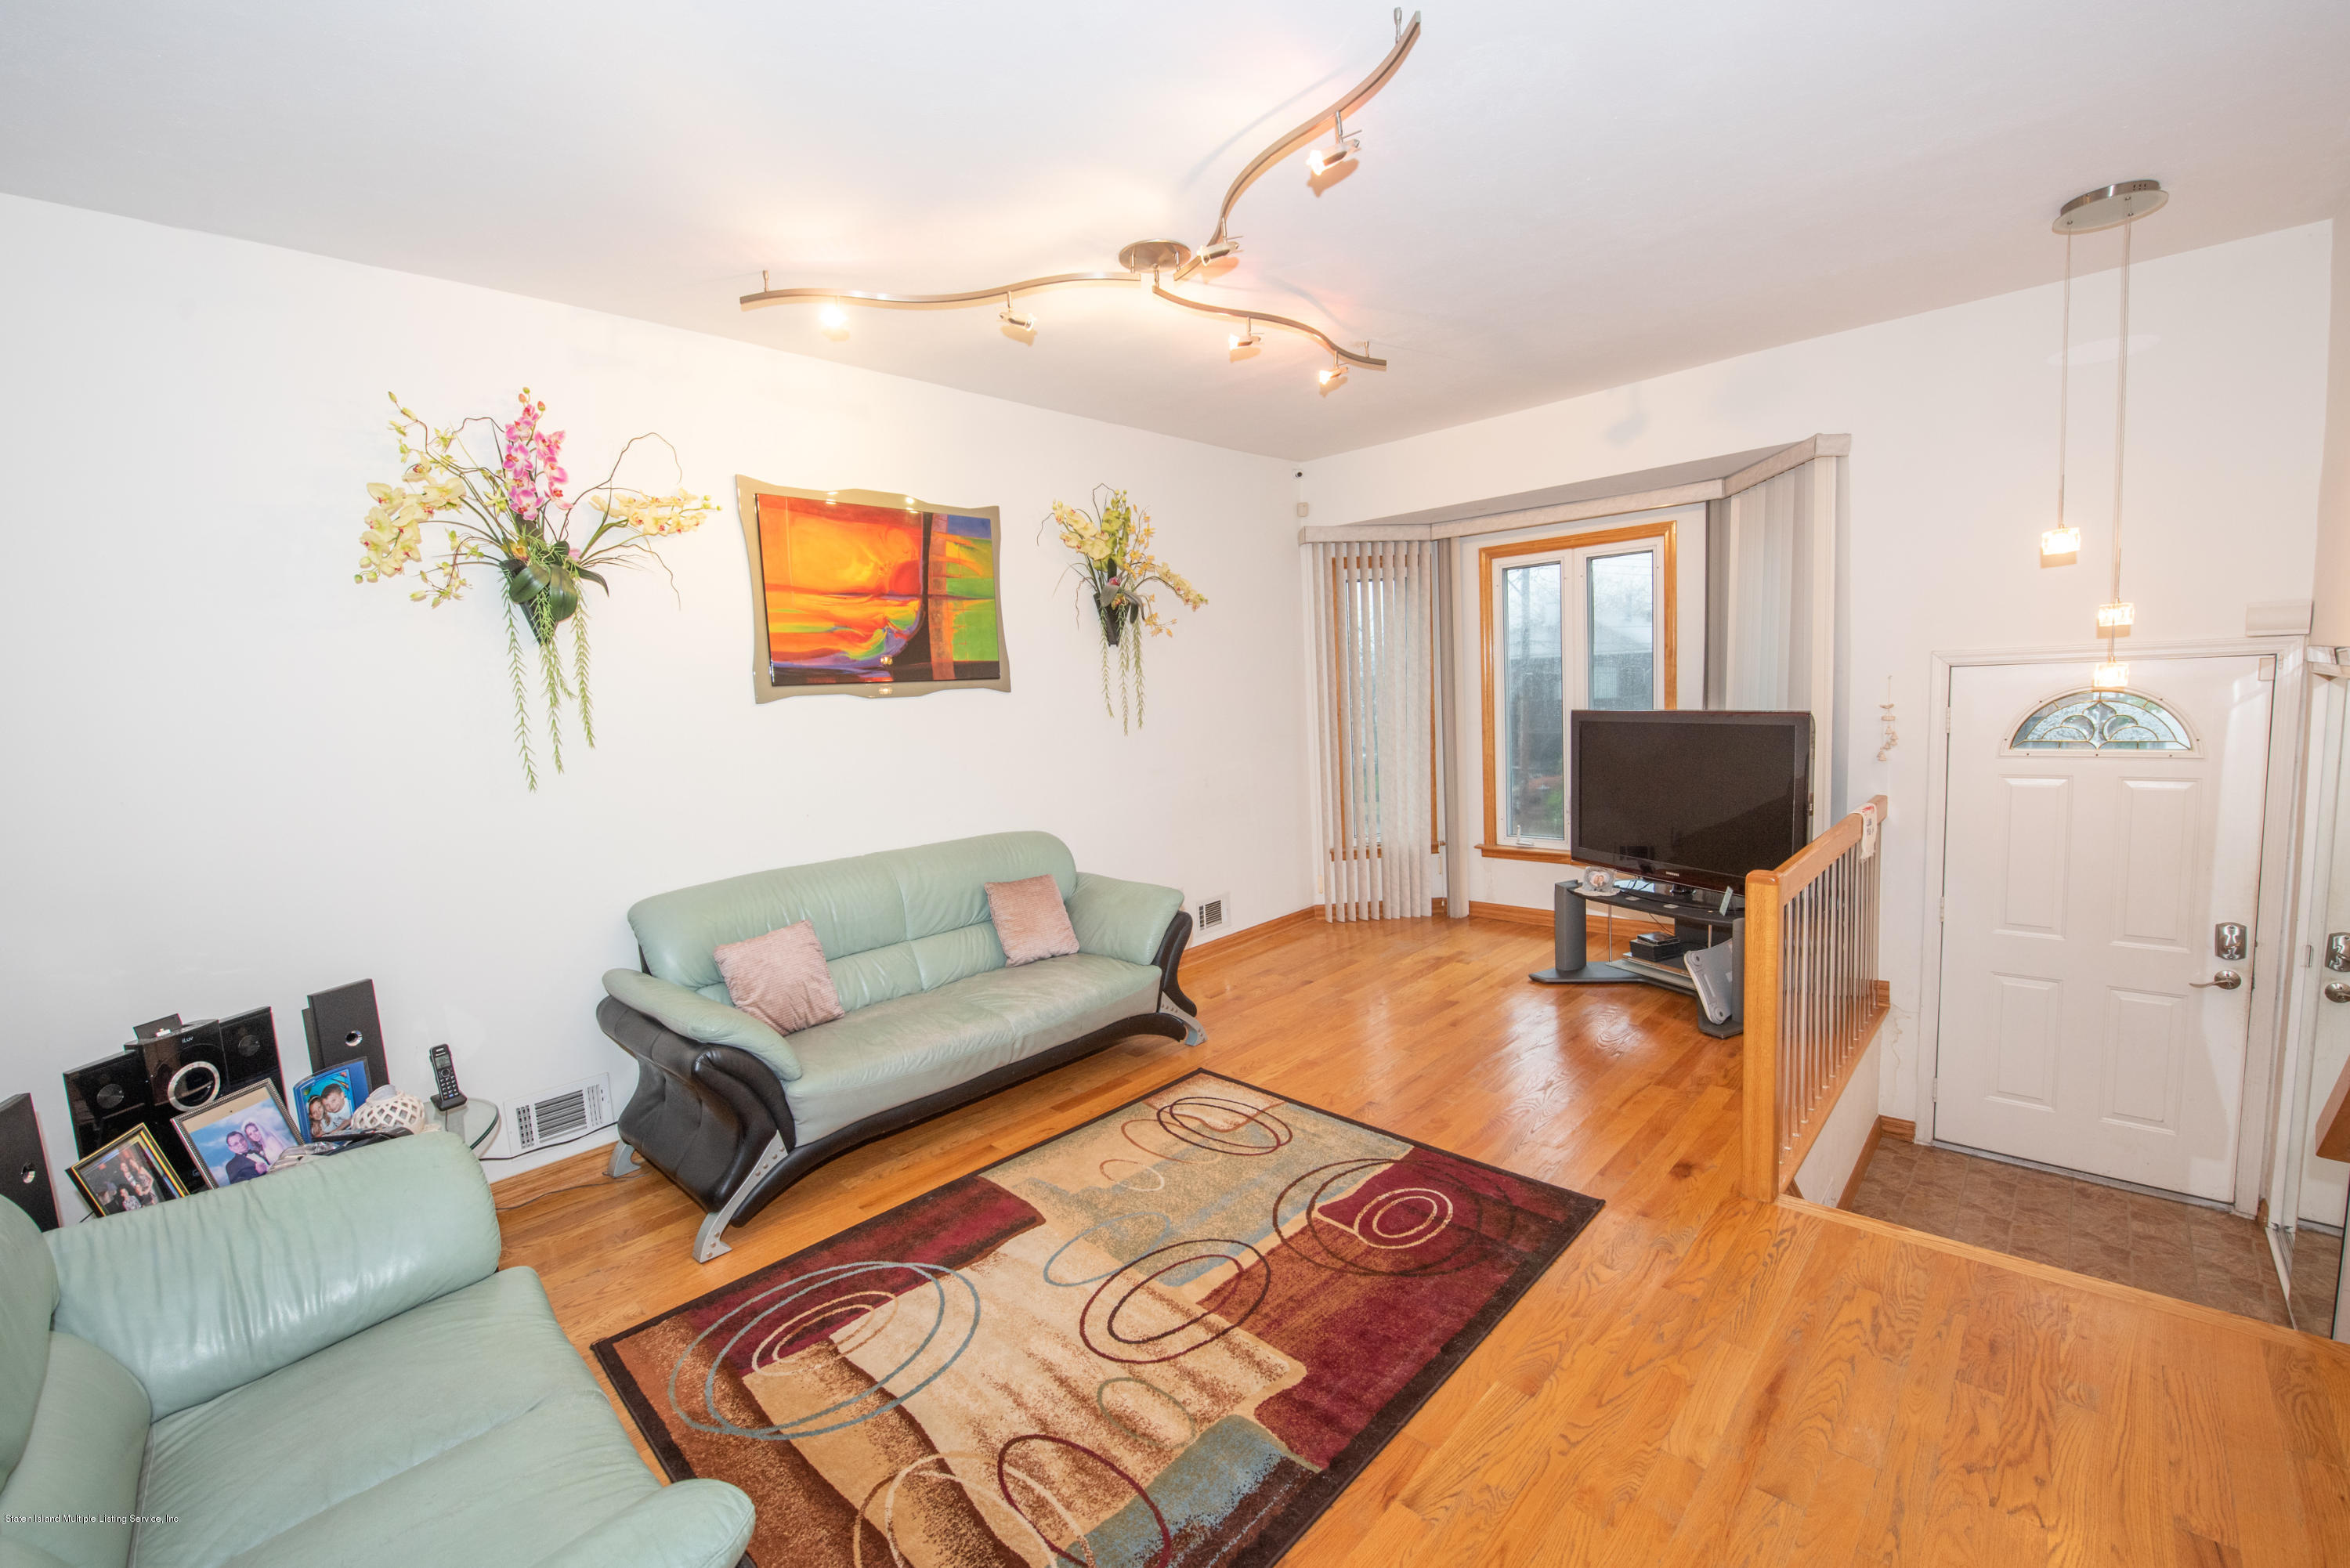 Single Family - Semi-Attached 76 Mcveigh Avenue  Staten Island, NY 10314, MLS-1133370-4